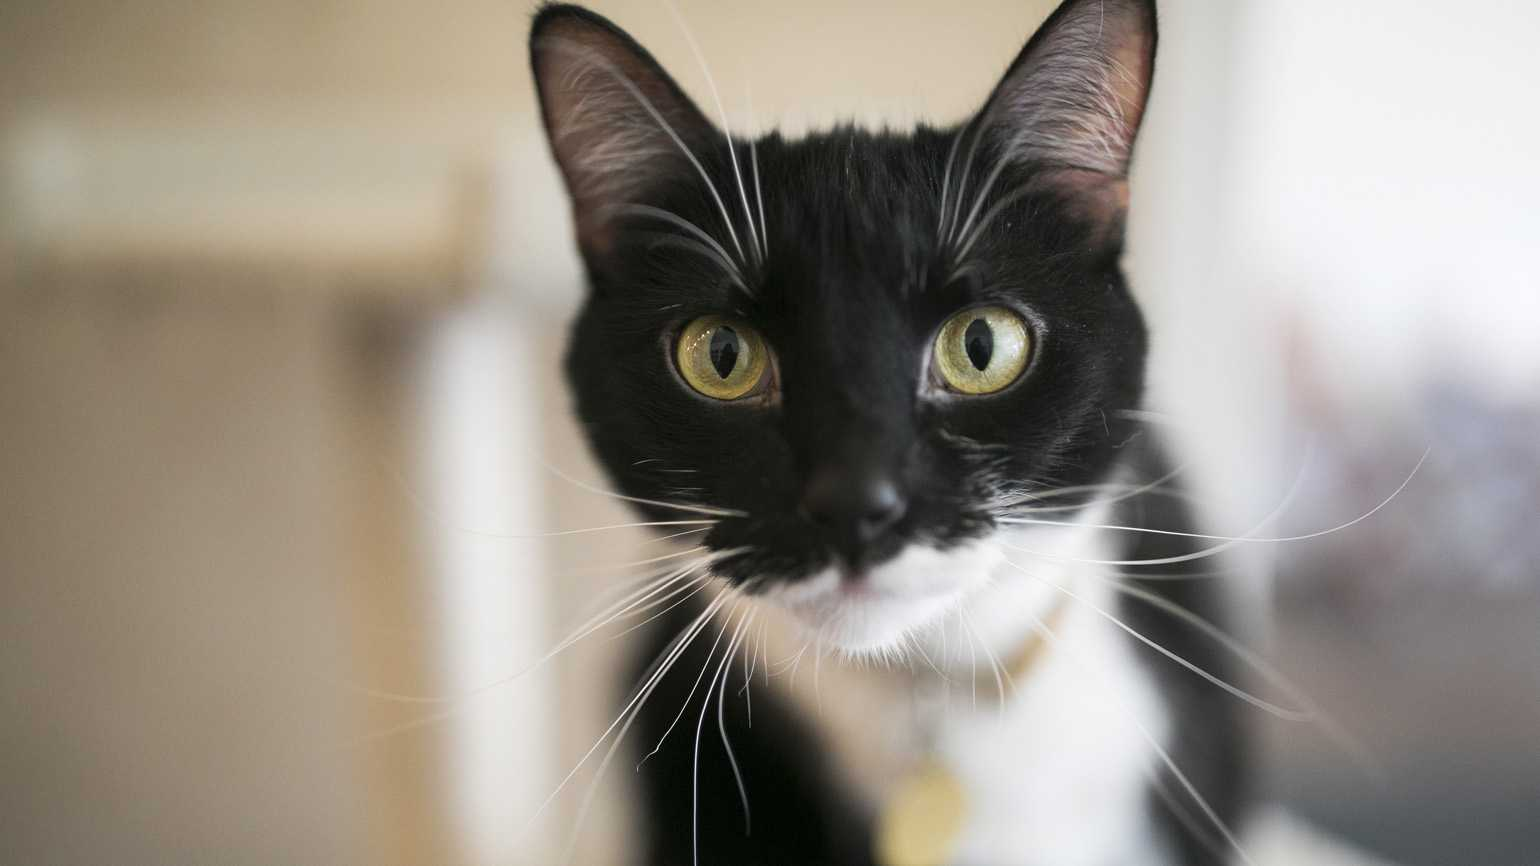 A headshot portrait of a black and white cat. Photo credit: Maddie McGarvey